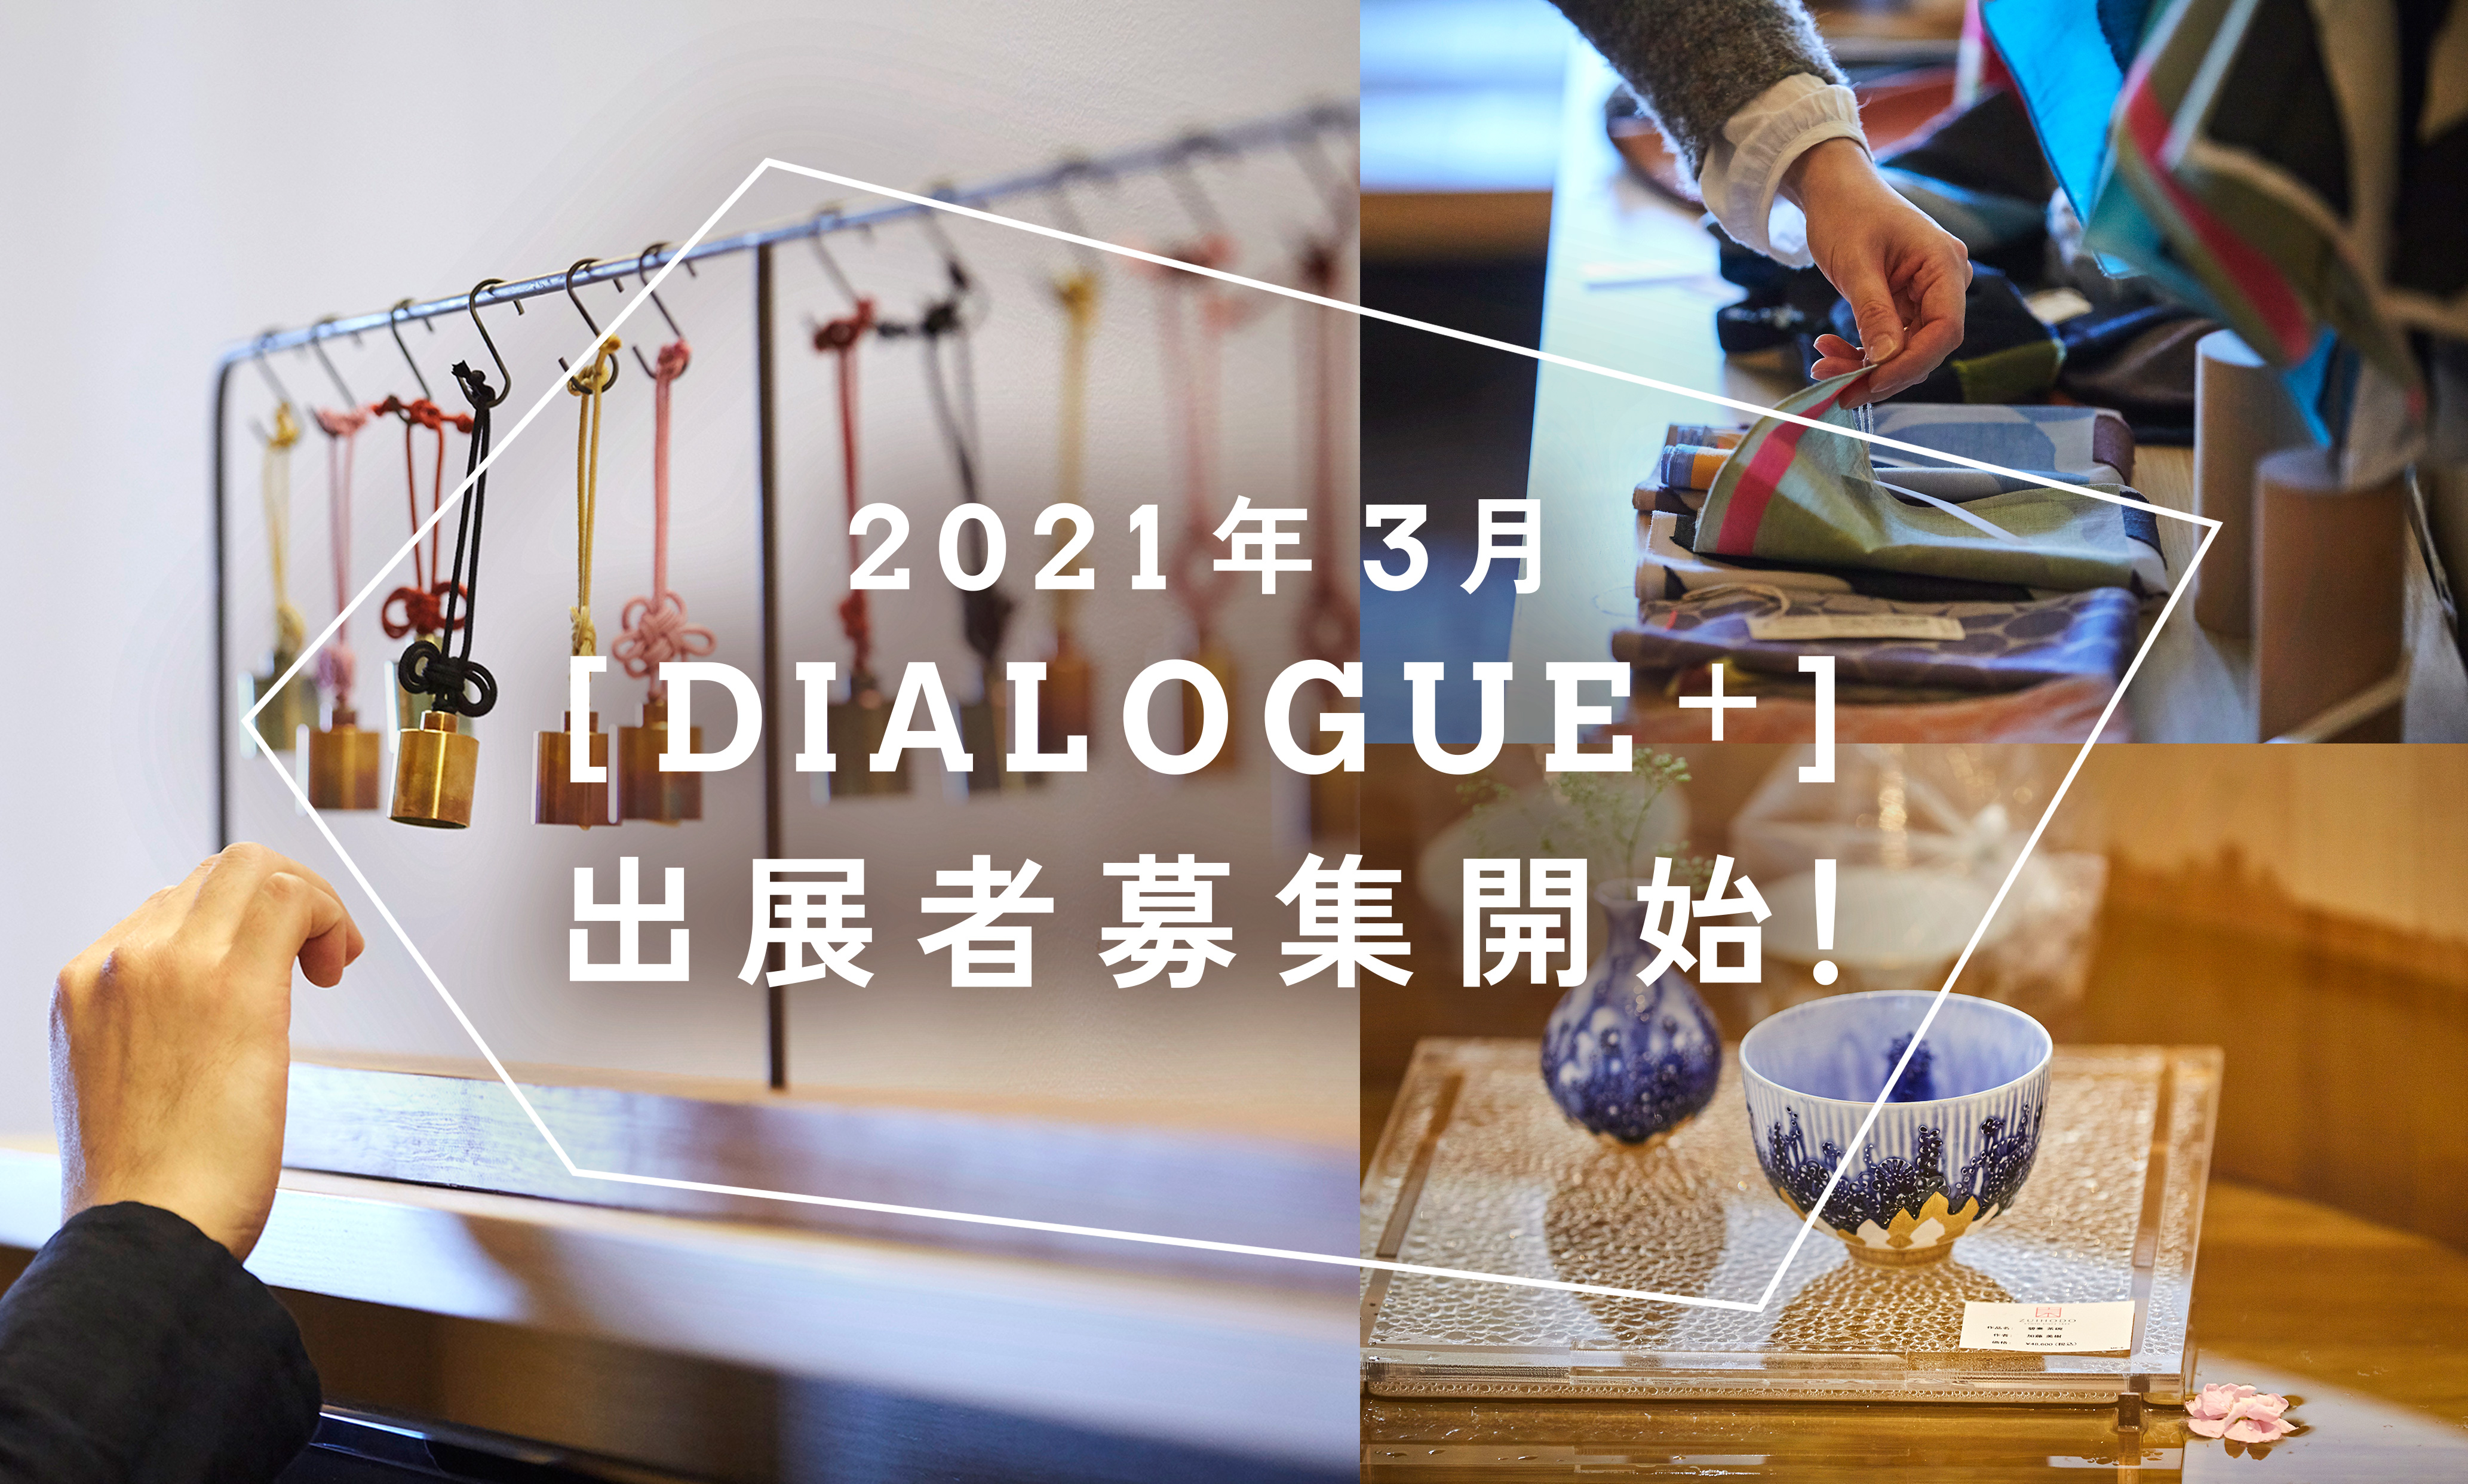 「Kyoto Crafts Exhibition DIALOGUE +」出展者募集開始のお知らせ